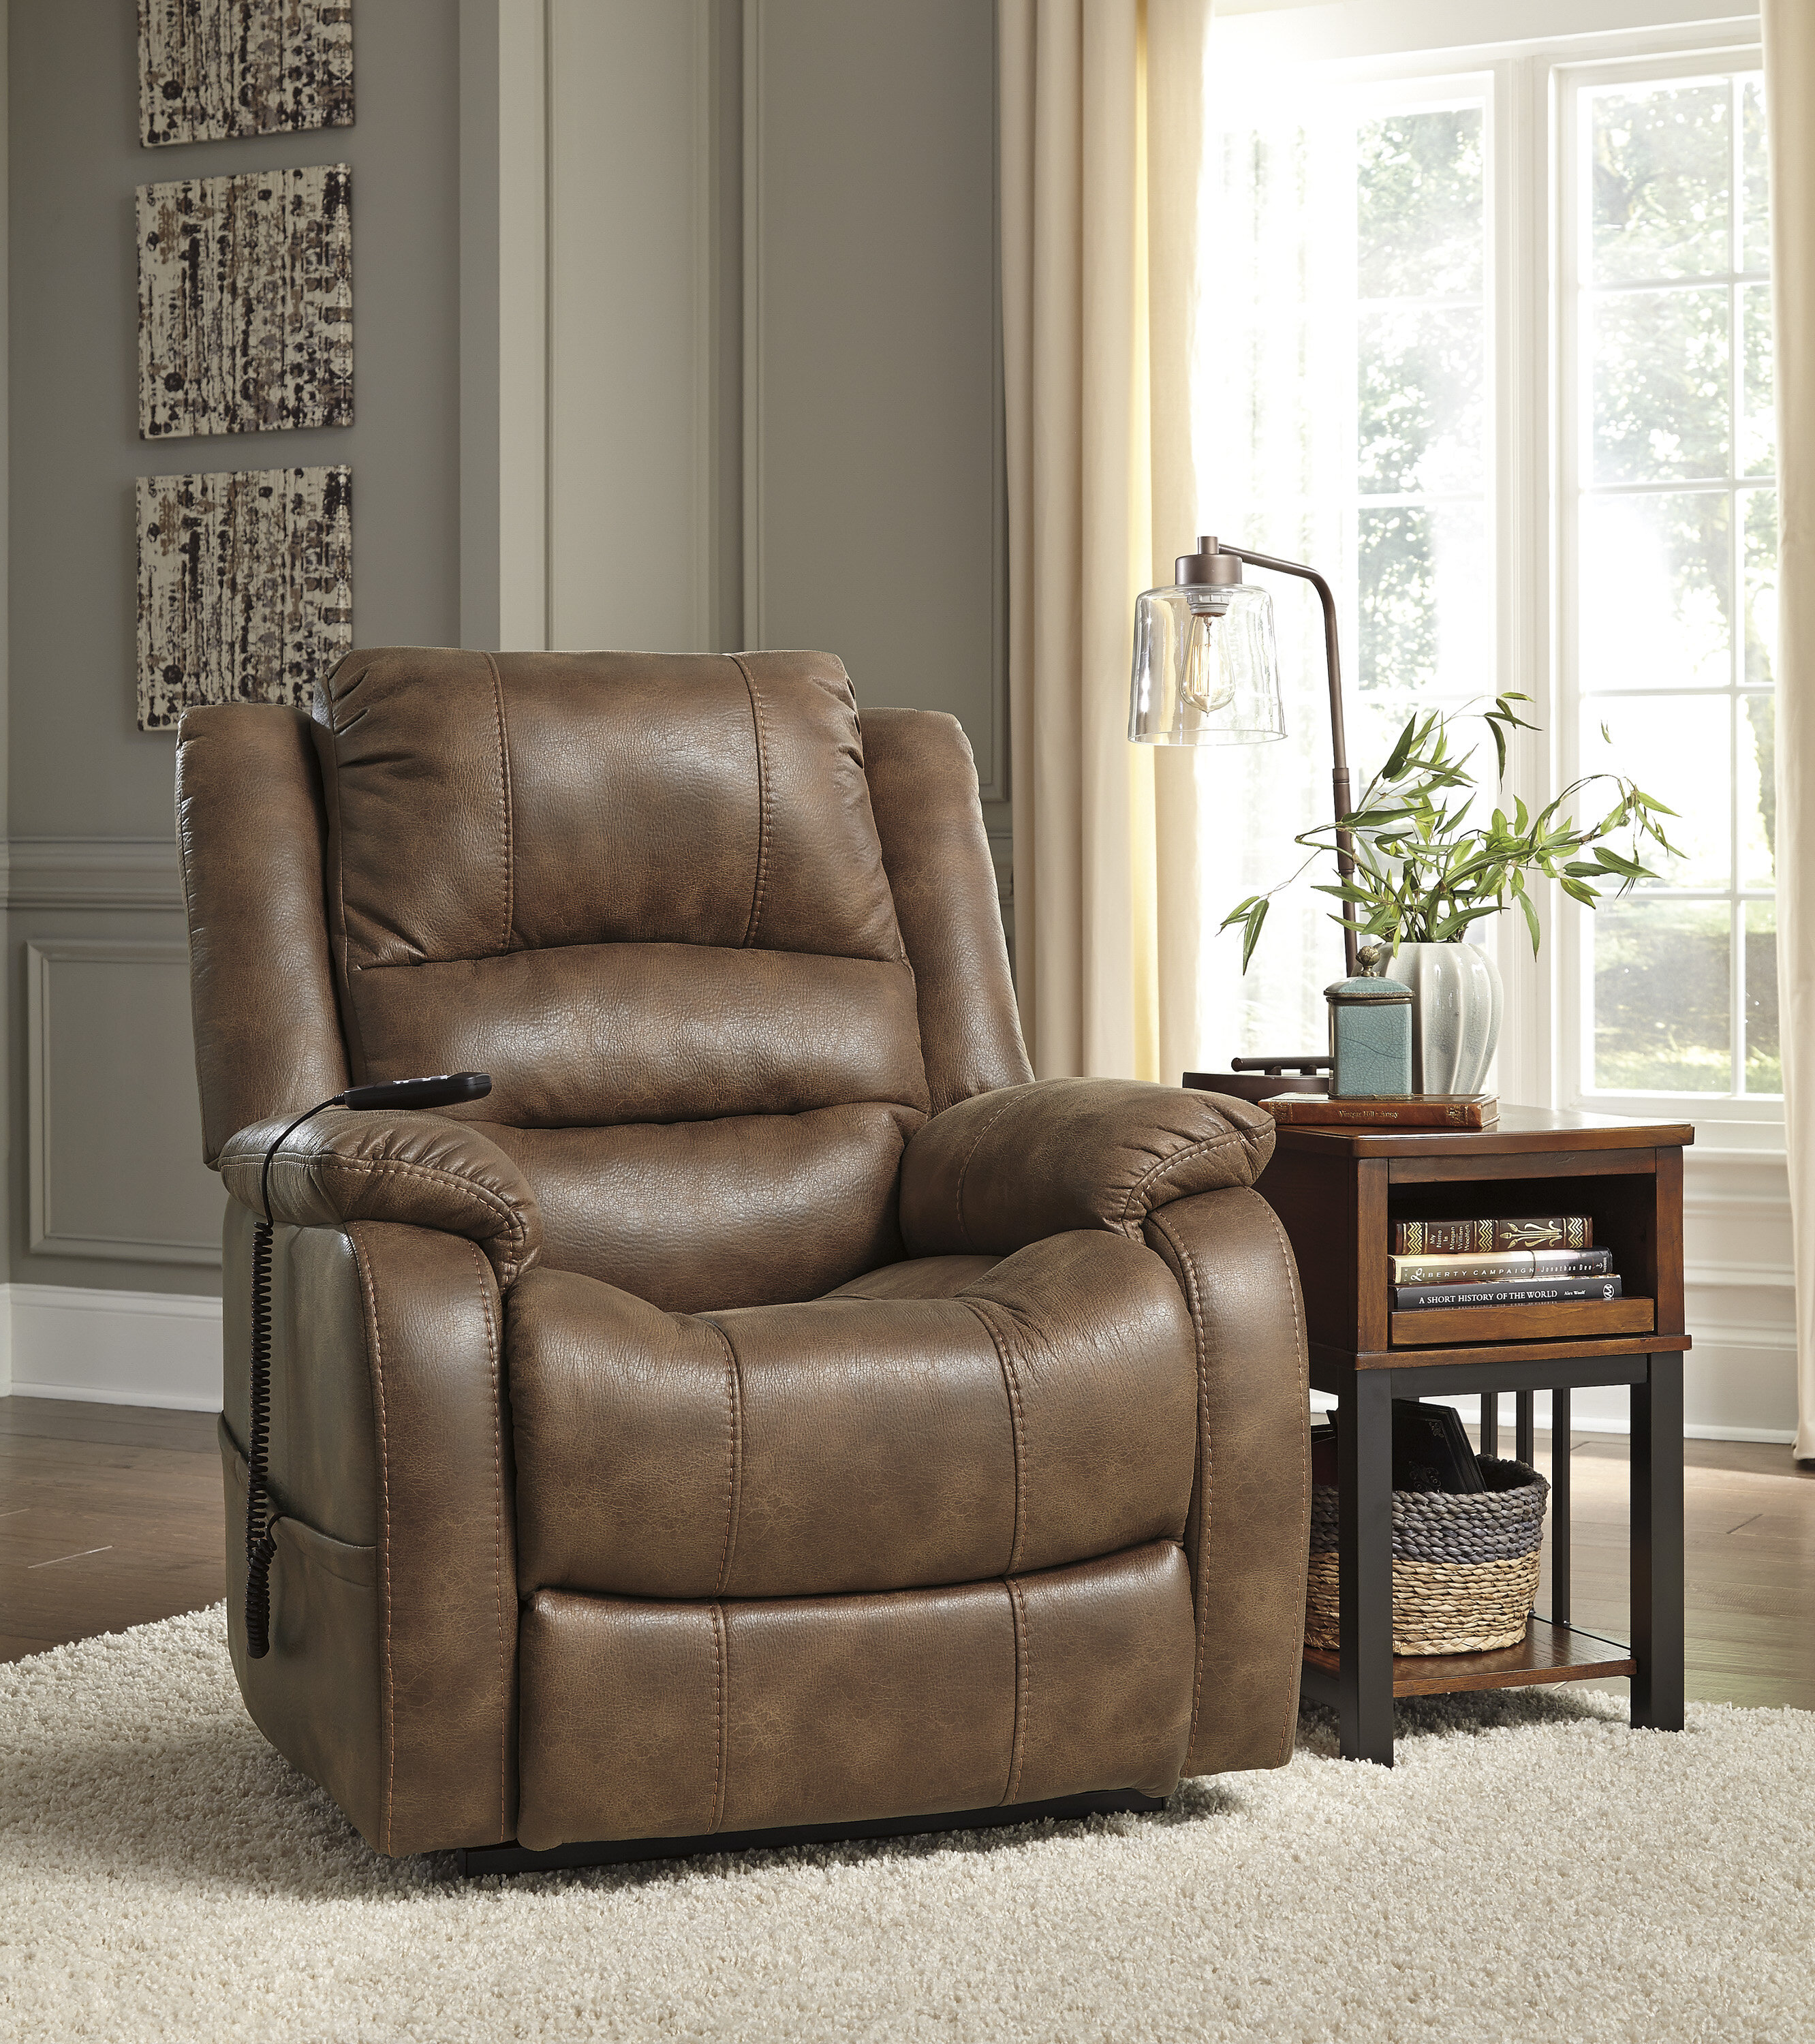 Darby Home Co Forreston Power Lift Recliner & Reviews | Wayfair